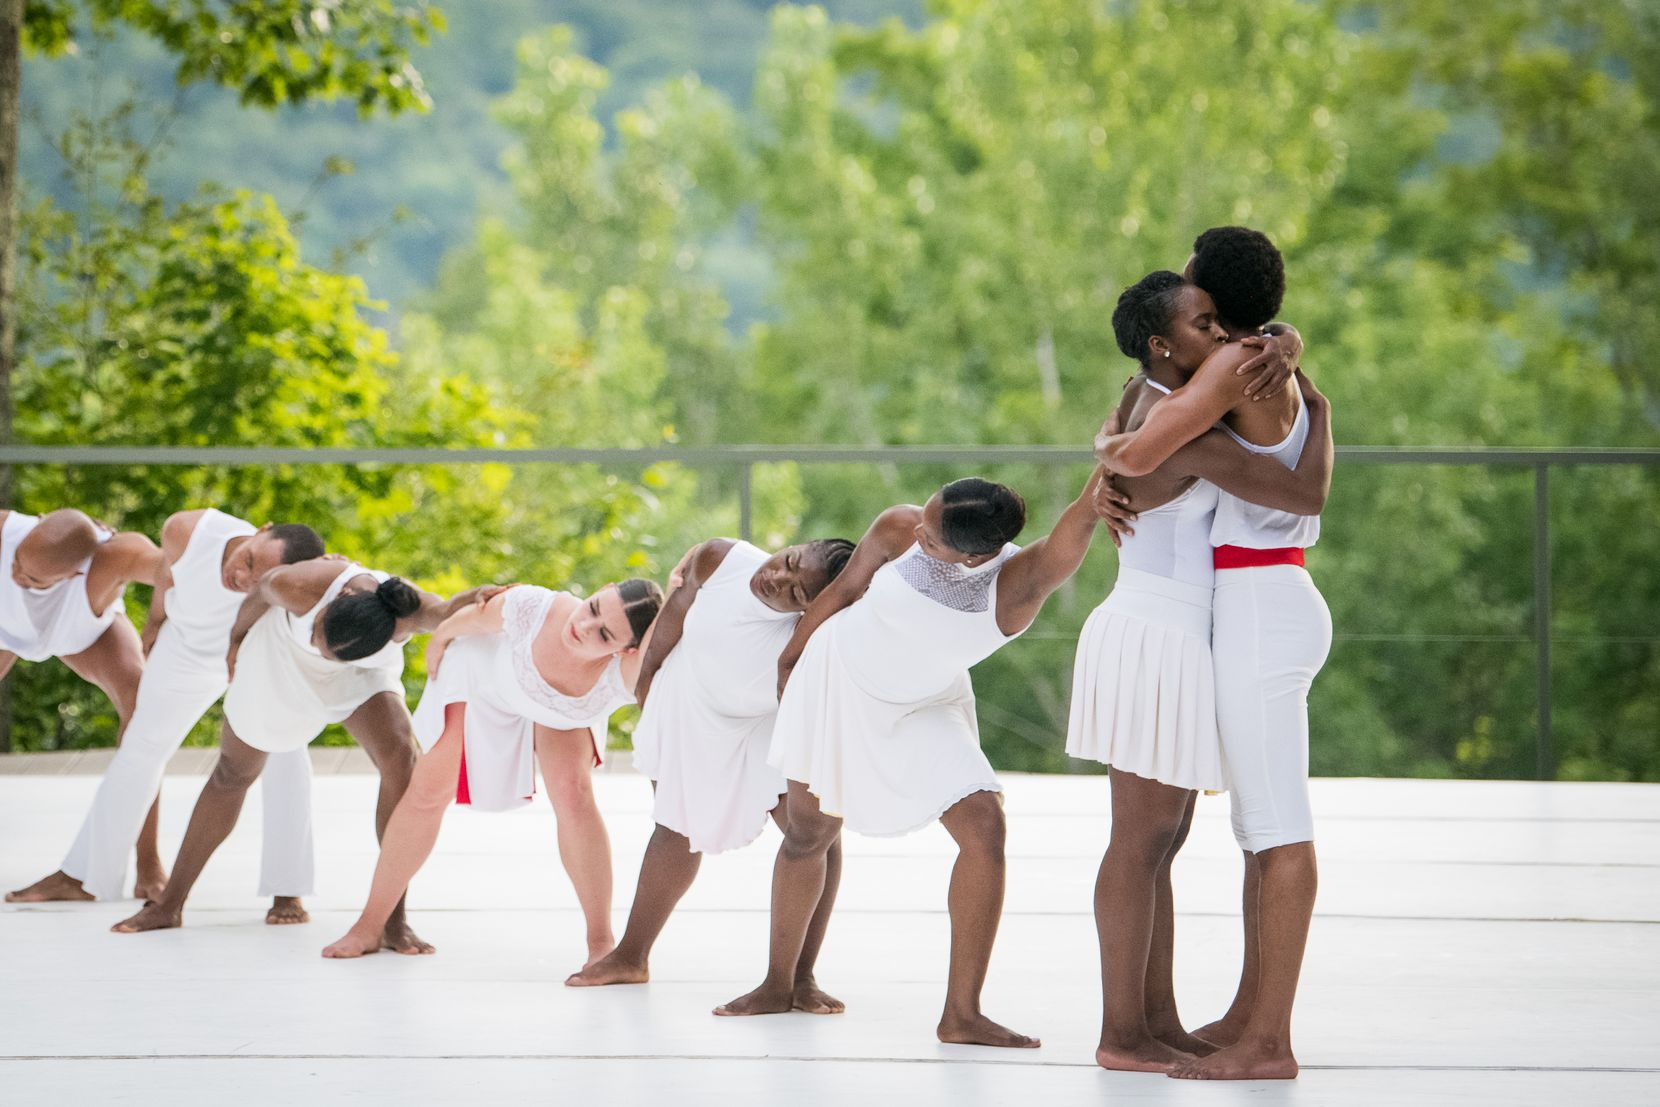 The Dallas Black Dance Theatre made its debut at the renowned Jacob's Pillow dance festival in Massachusetts this week.